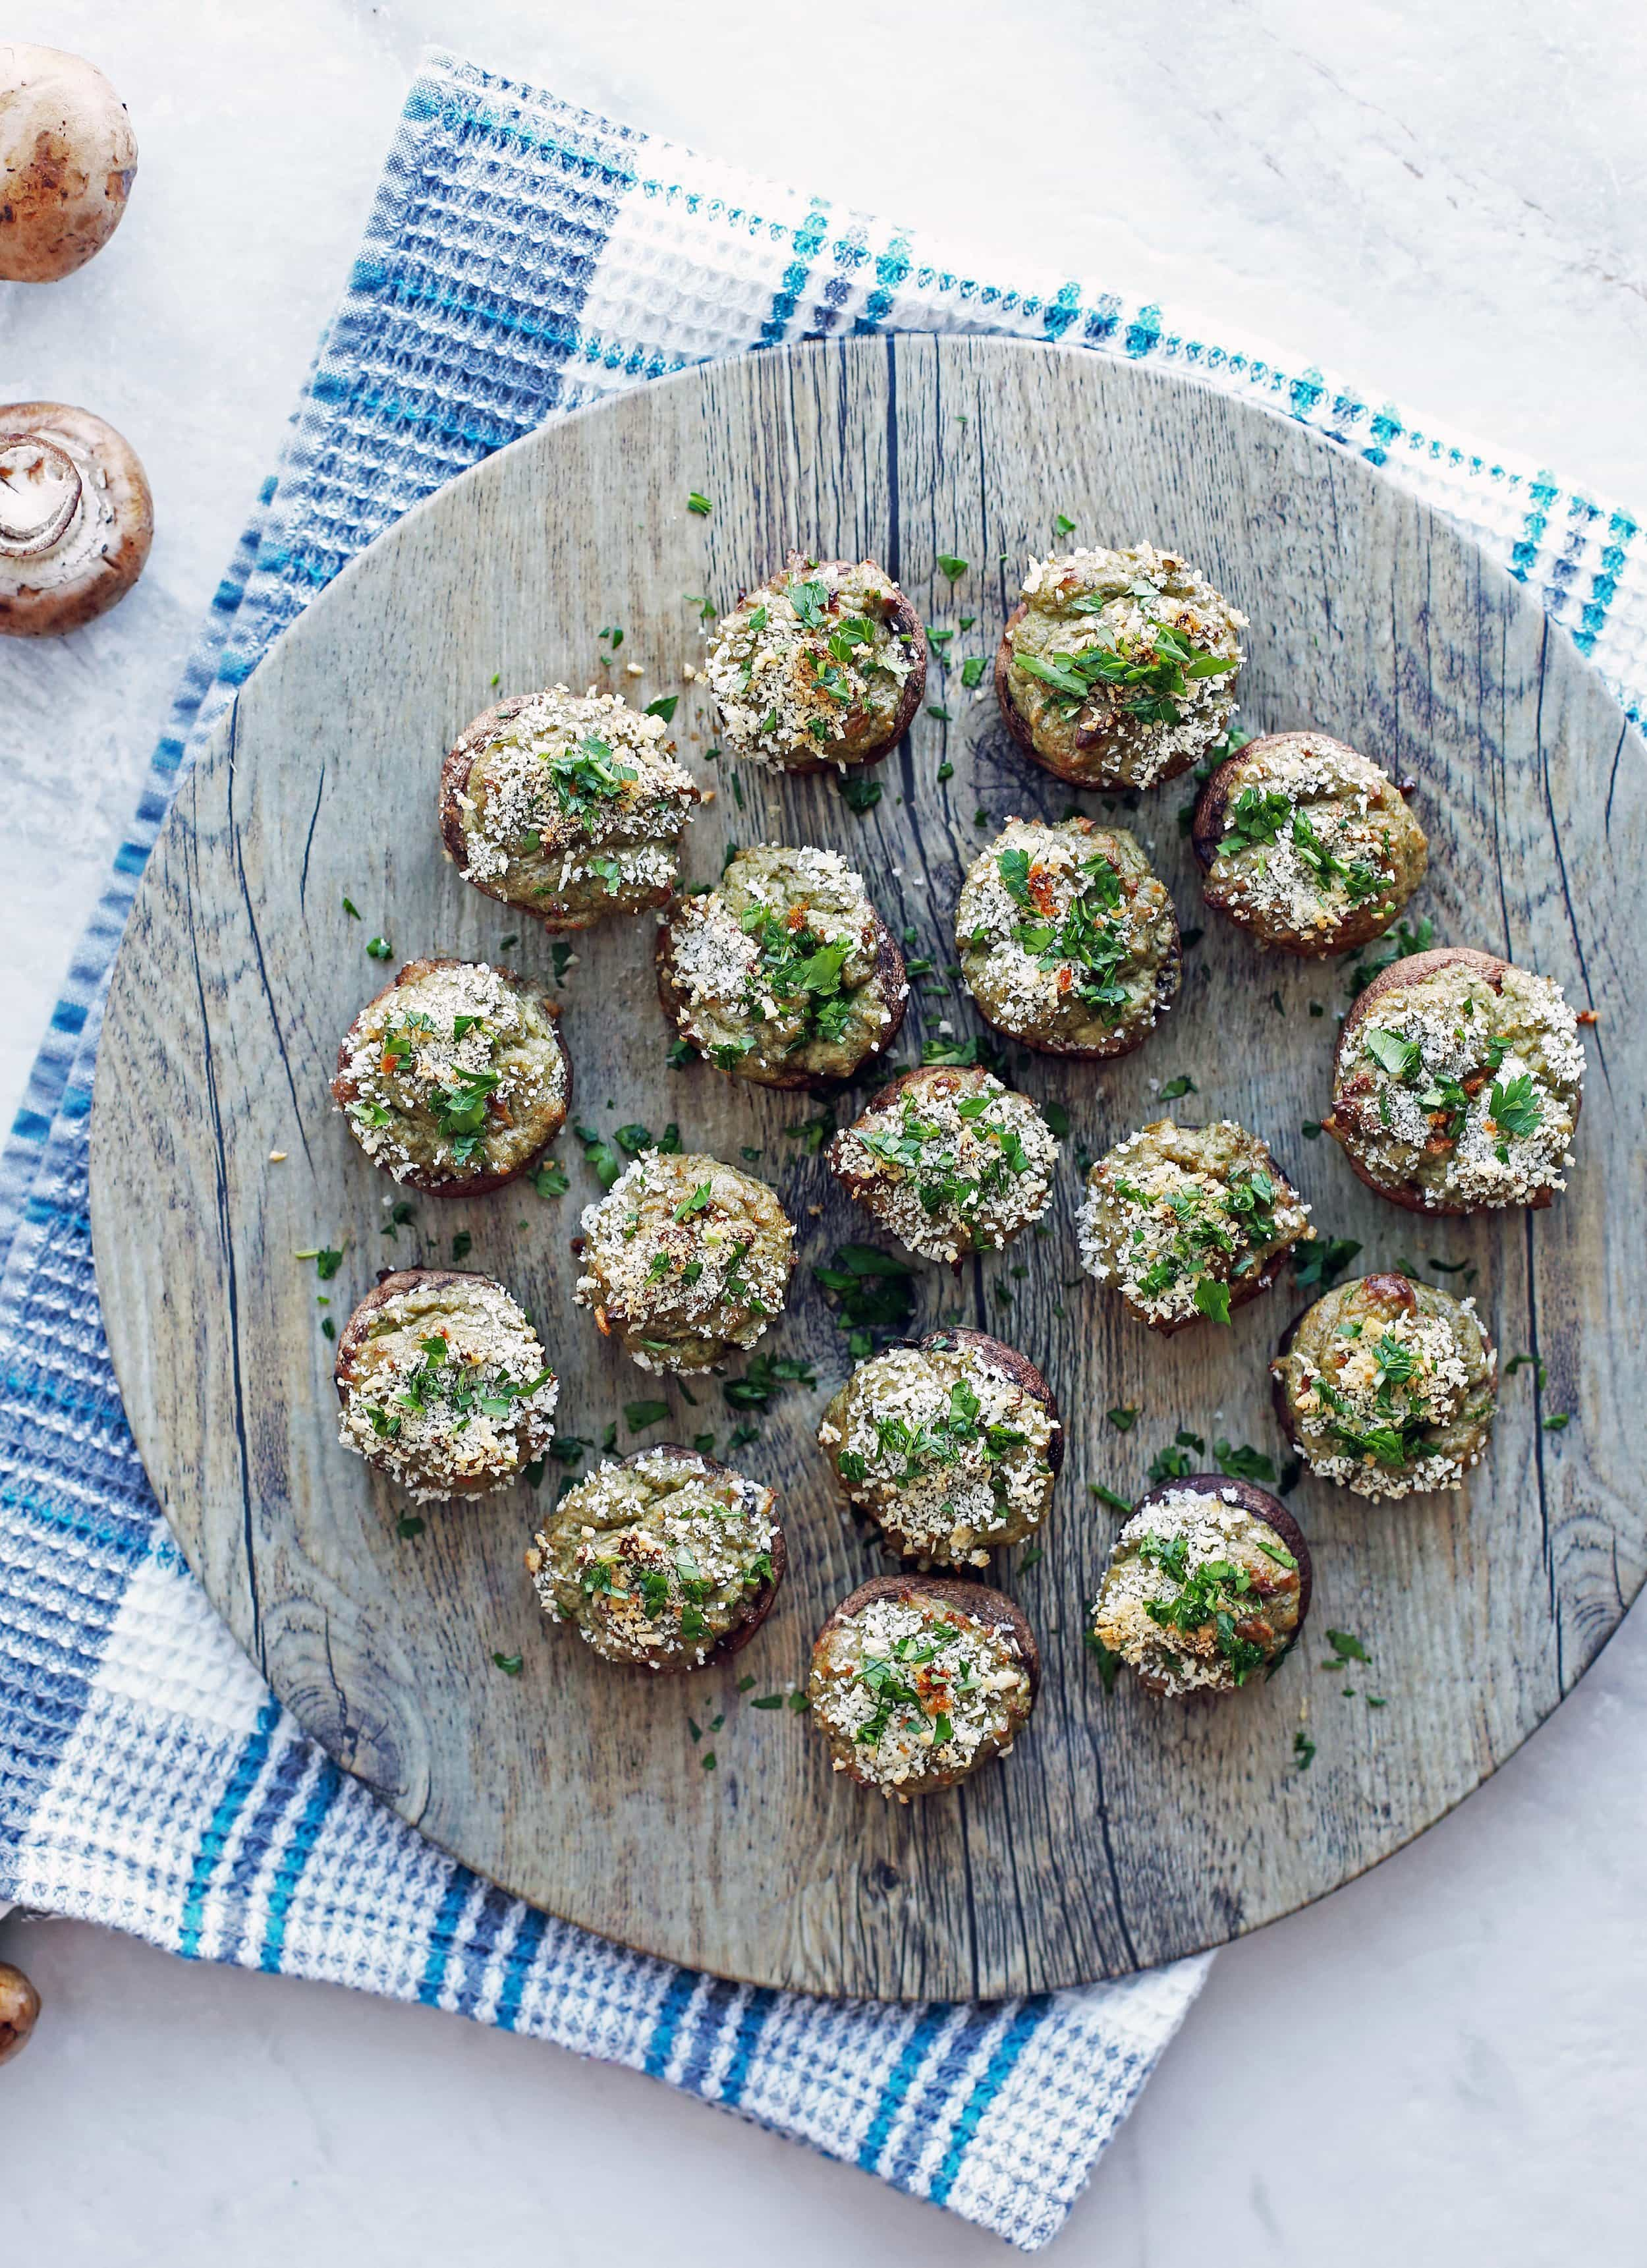 Overhead view of Baked Cheese Stuffed Mushrooms with breadcrumb and parsley topping.